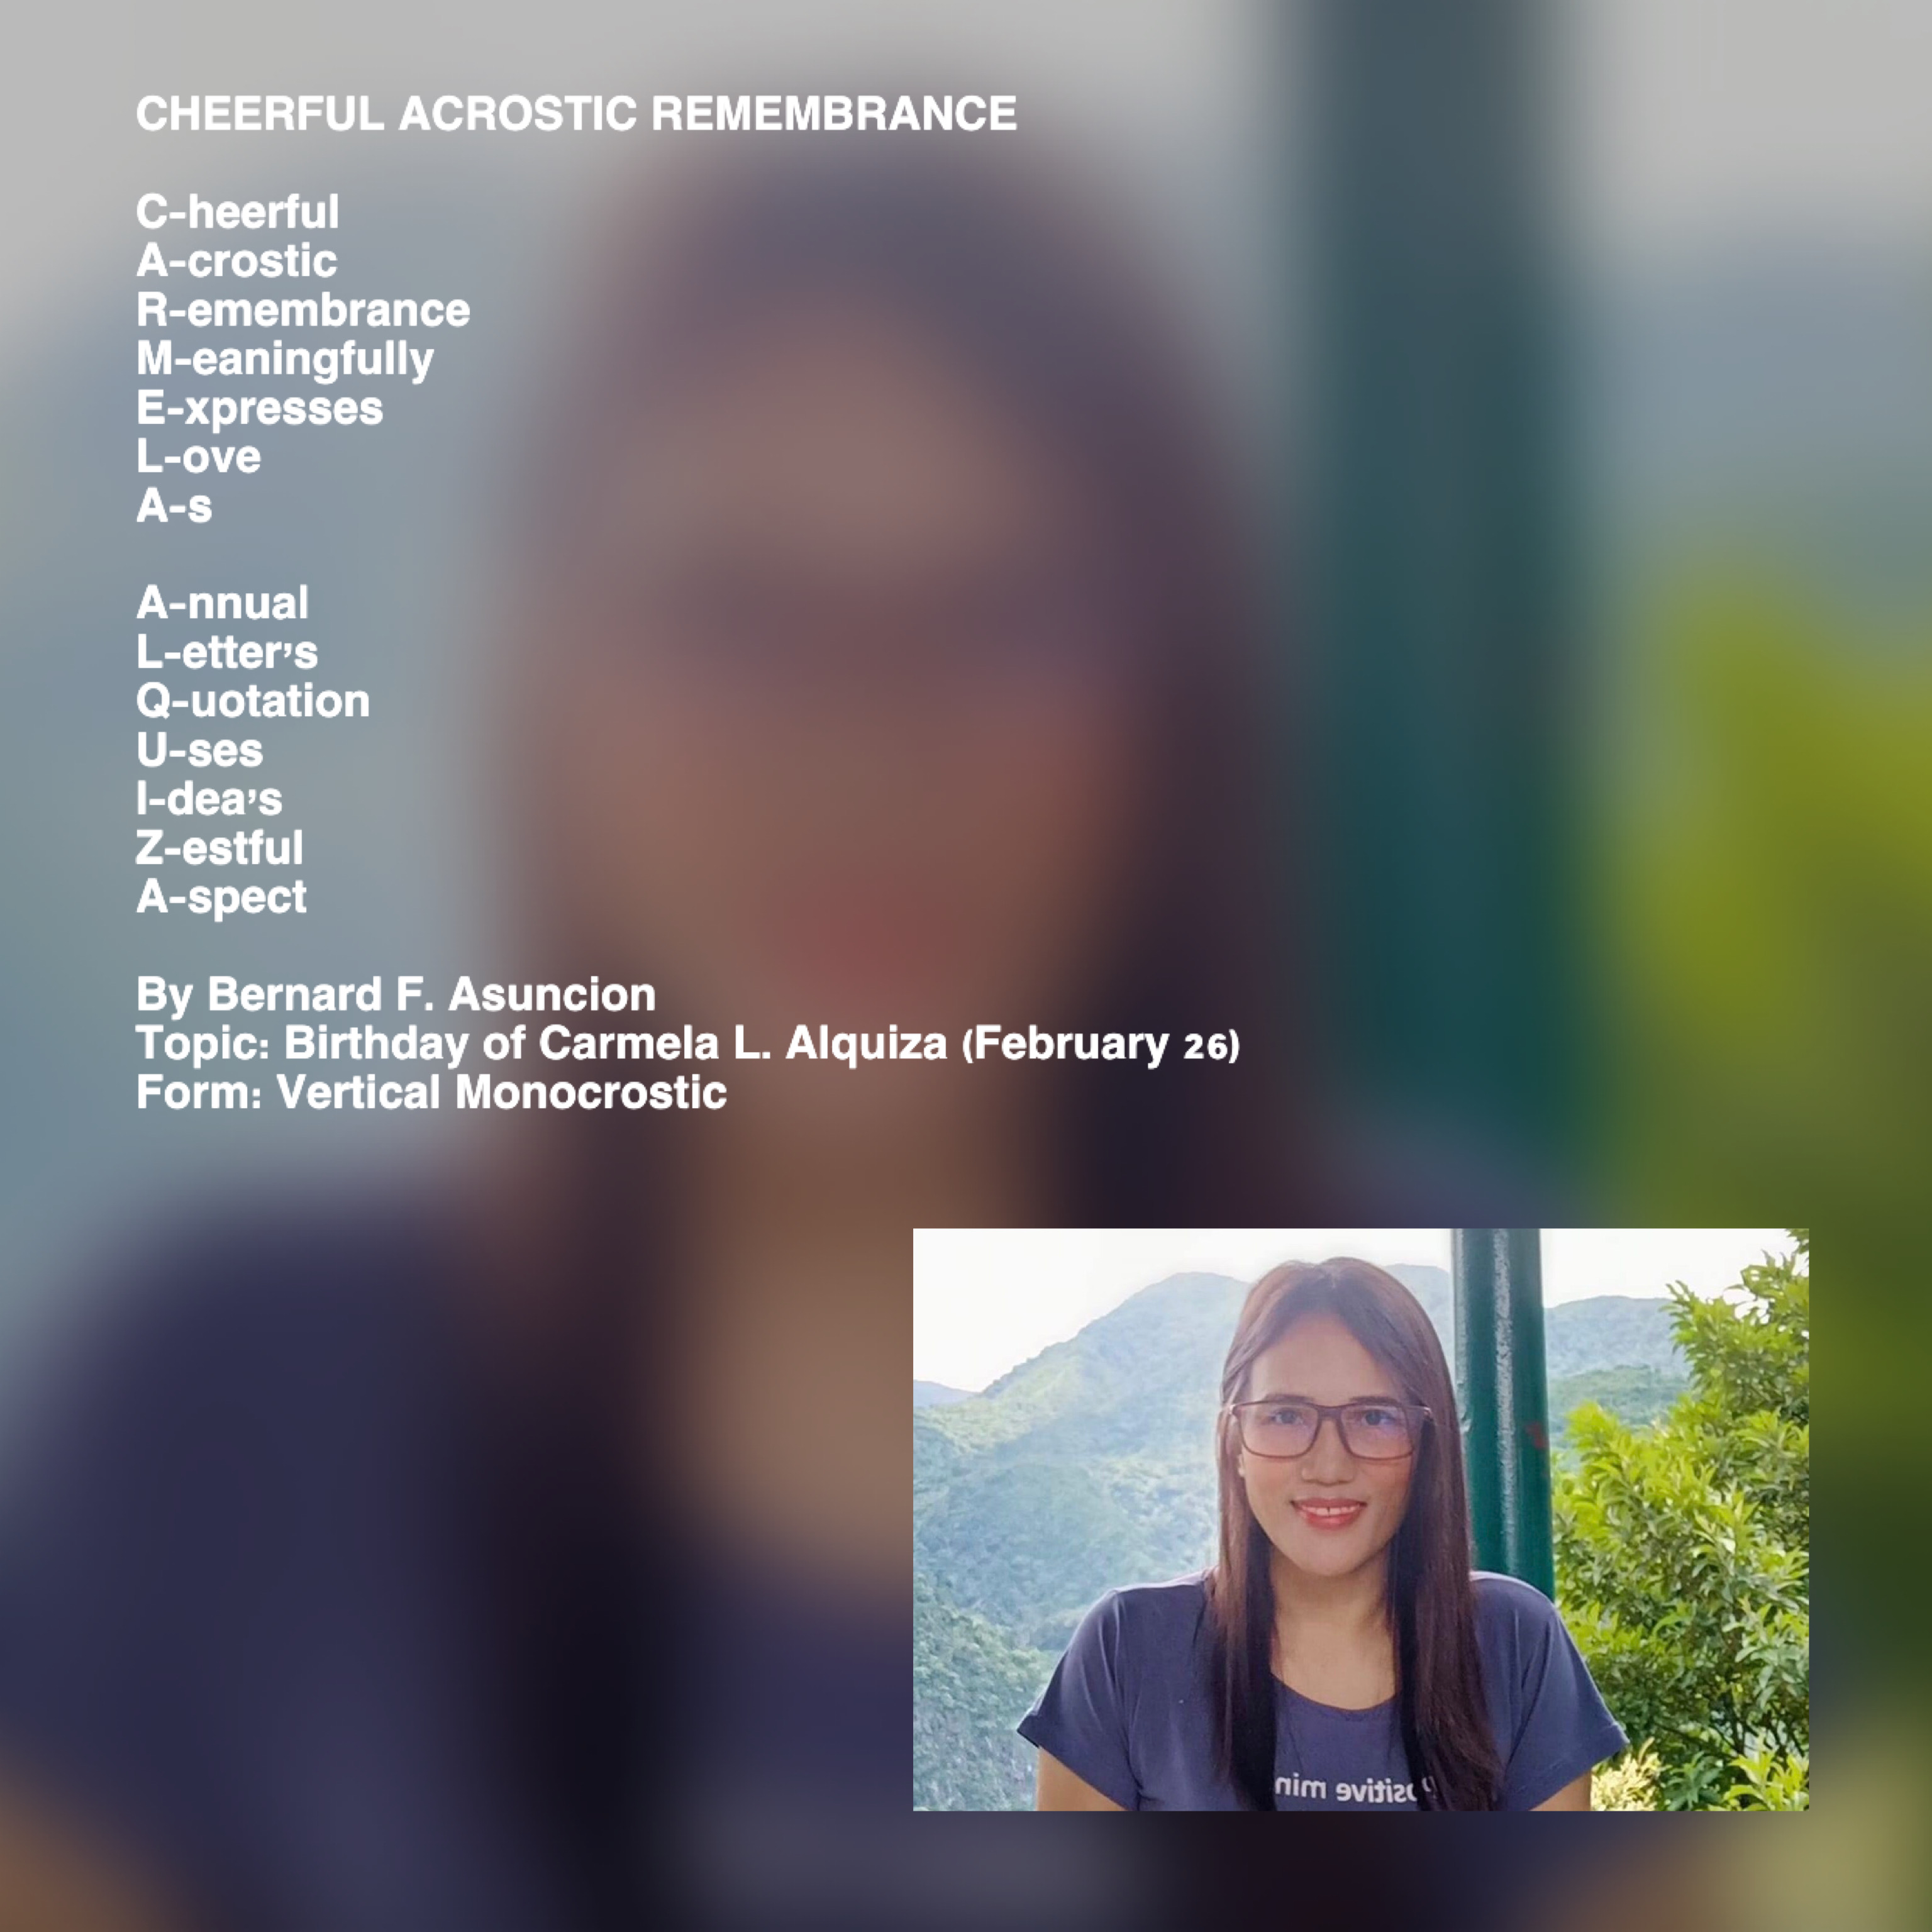 Cheerful Acrostic Remembrance